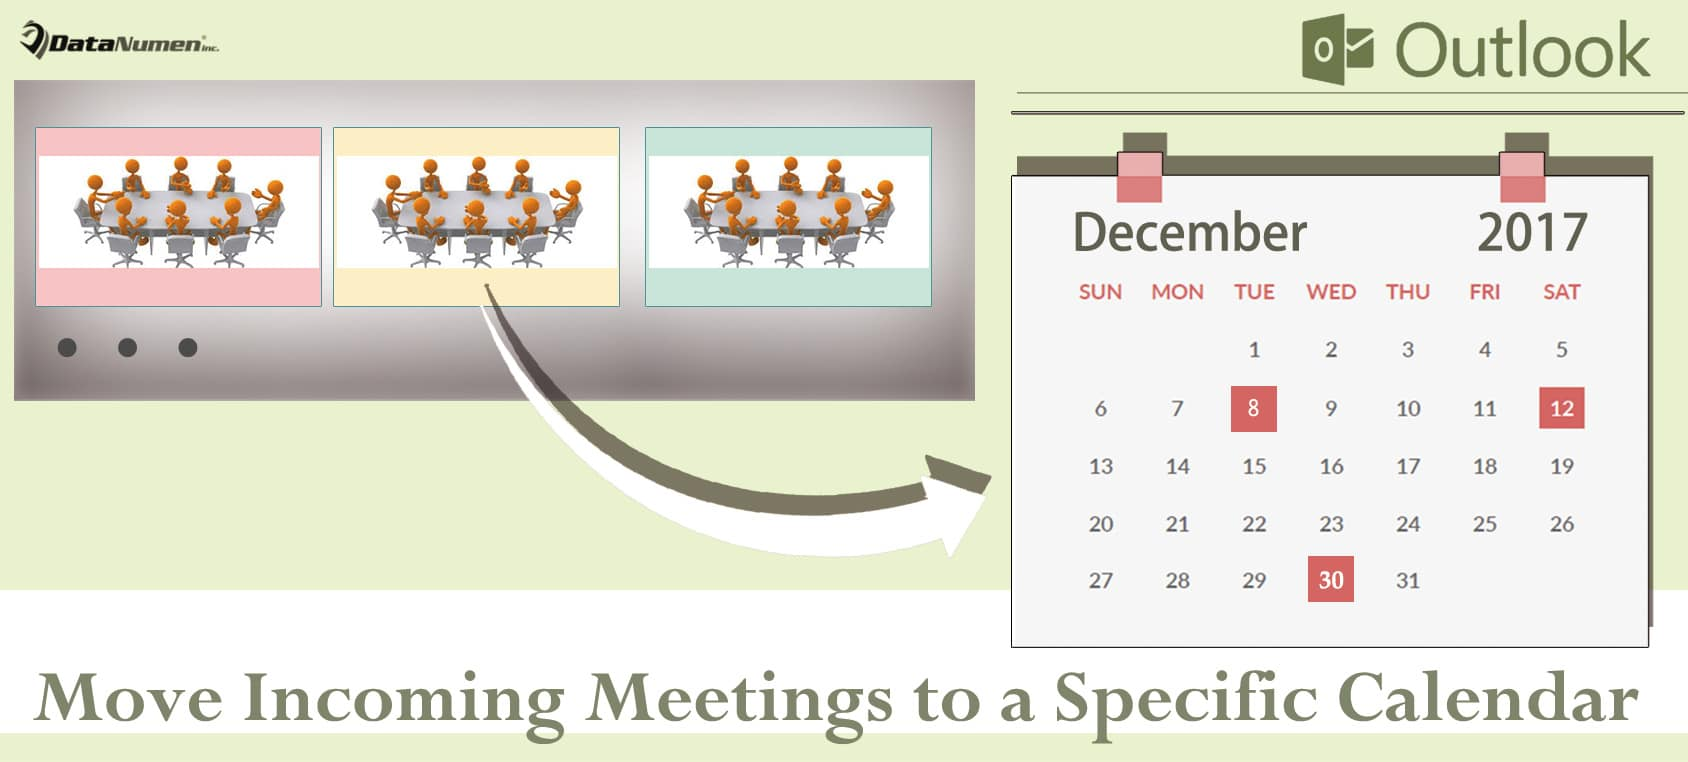 Auto Move Incoming Meetings to a Specific Outlook Calendar